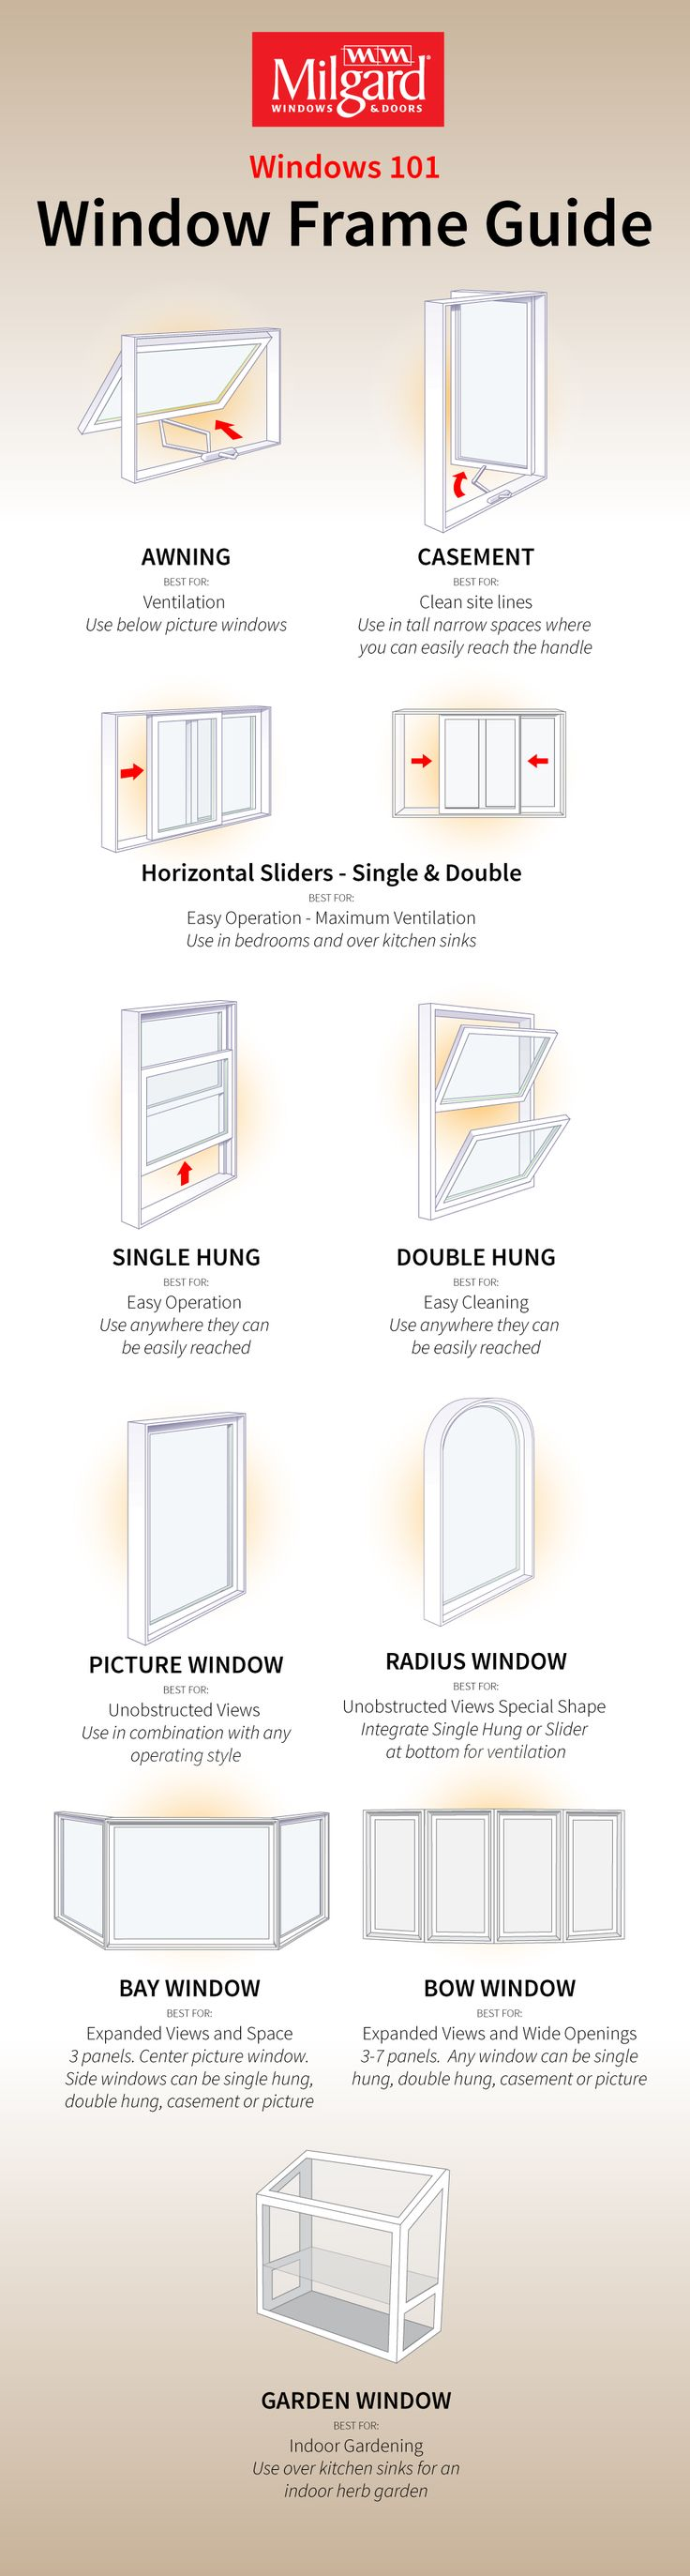 There's so much you can do with windows, it's sometimes hard to know where to start. Whether you're building a new home or replacing existing windows, here's a handy guide to help you get inspired. Are you ready to change your view?